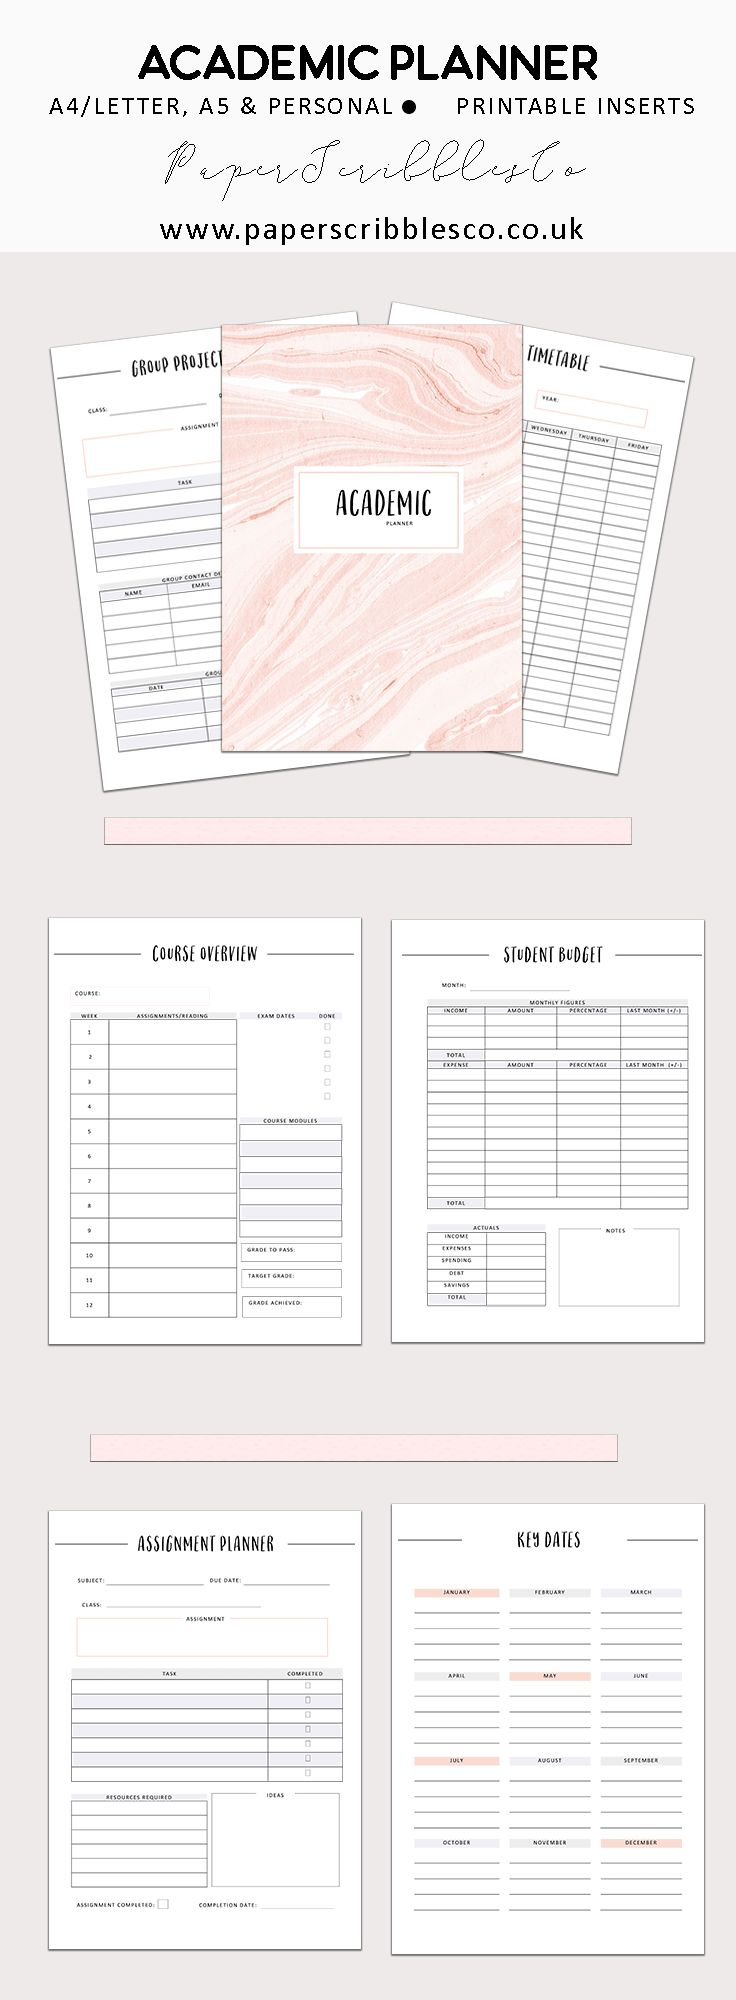 Academic Planner | Student Planner | College Planner |  Printable Planners |  Planning | Student Budget |  College Planning | Planner Inserts | Printable Inserts | Planner Organization